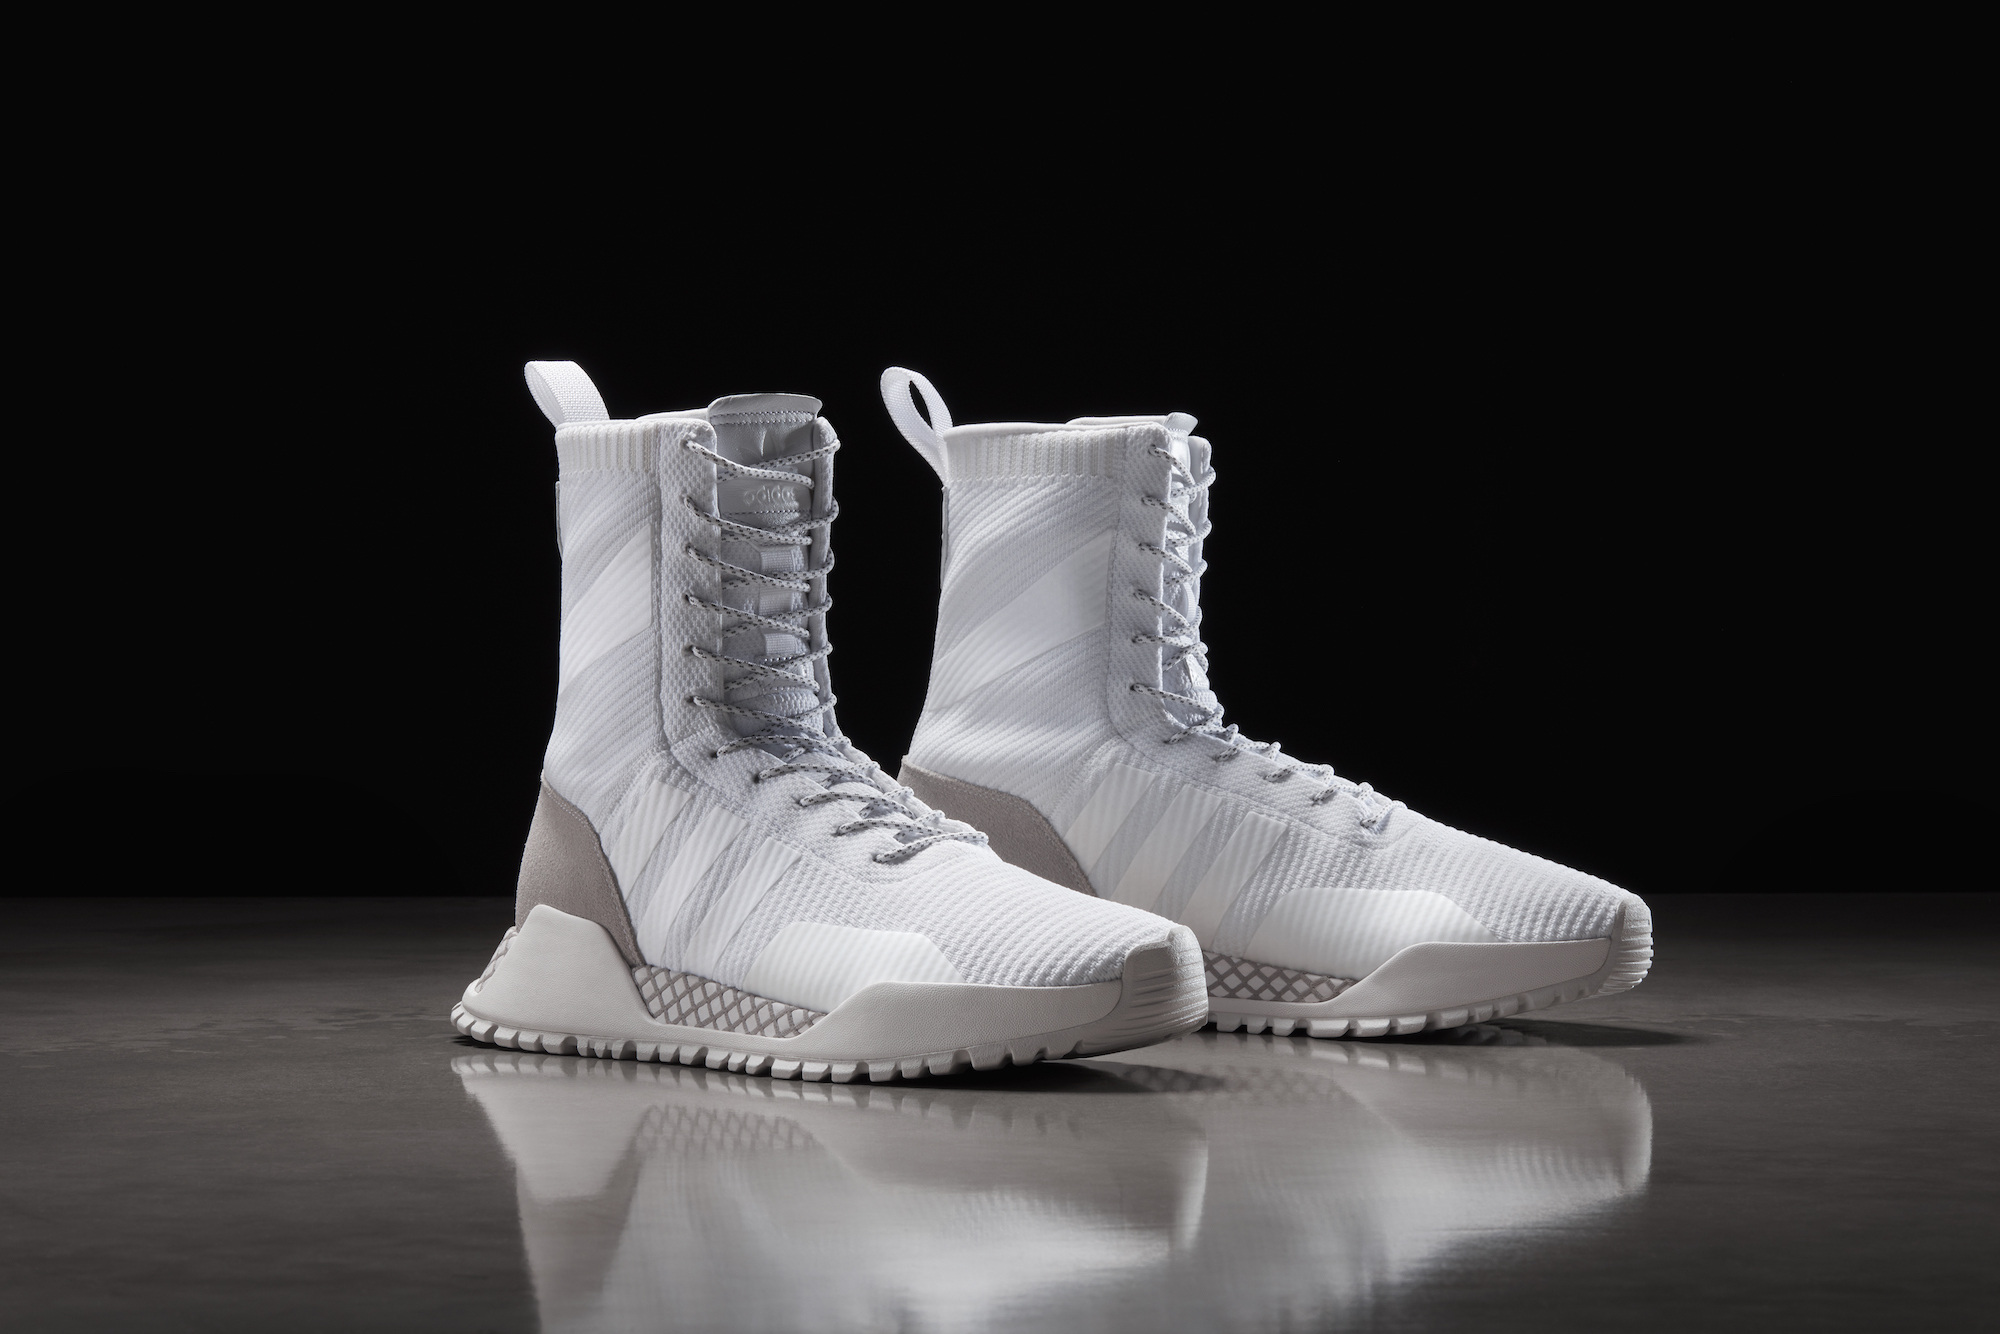 The adidas F1.3 is the Latest Three Stripes Sneakerboot